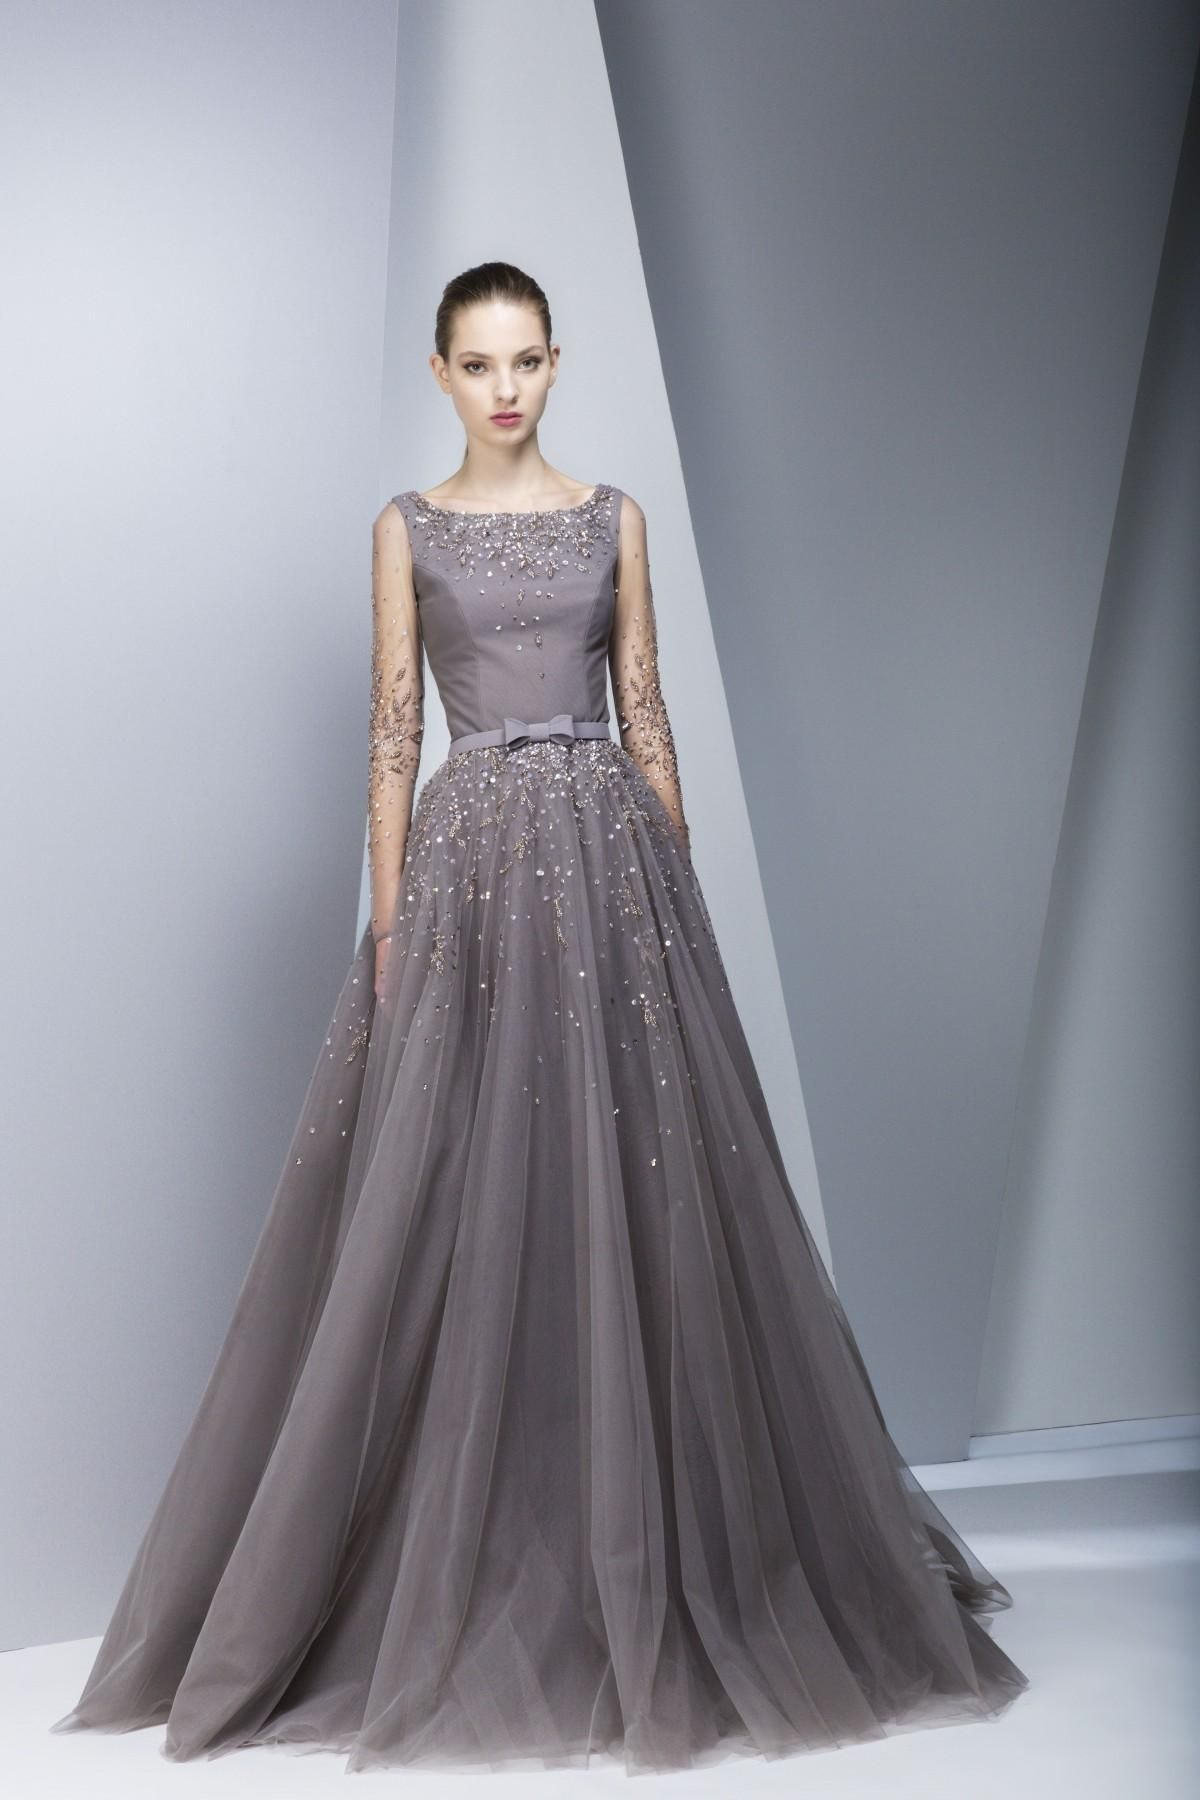 Luxury Prom Dresses 2015 Georges Chakra Evening Gowns Celebrity ...